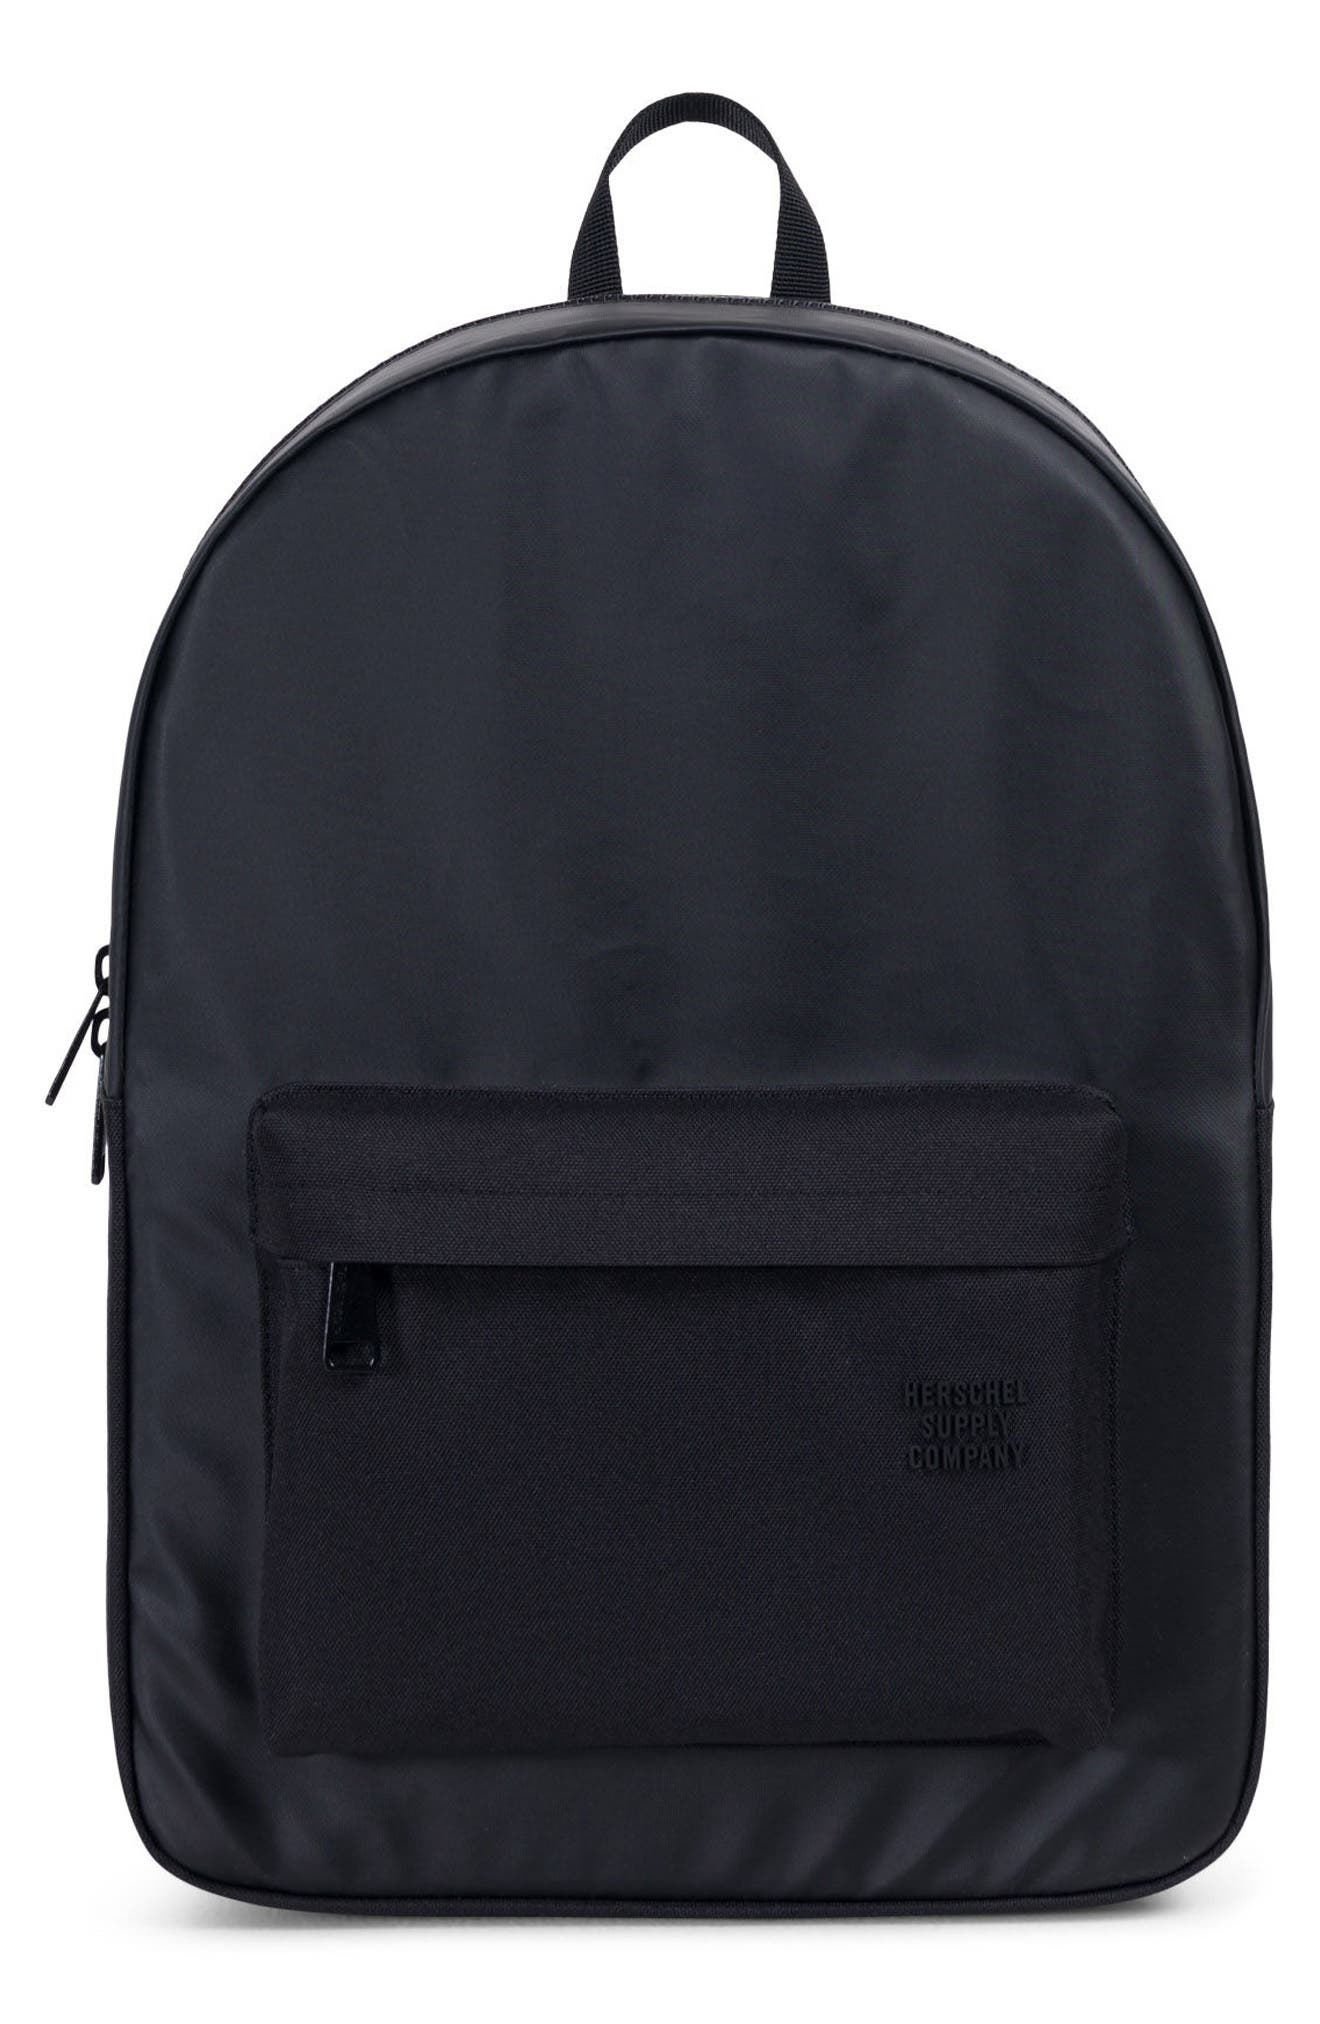 Winlaw Polycoat Studio Backpack,                         Main,                         color, 001